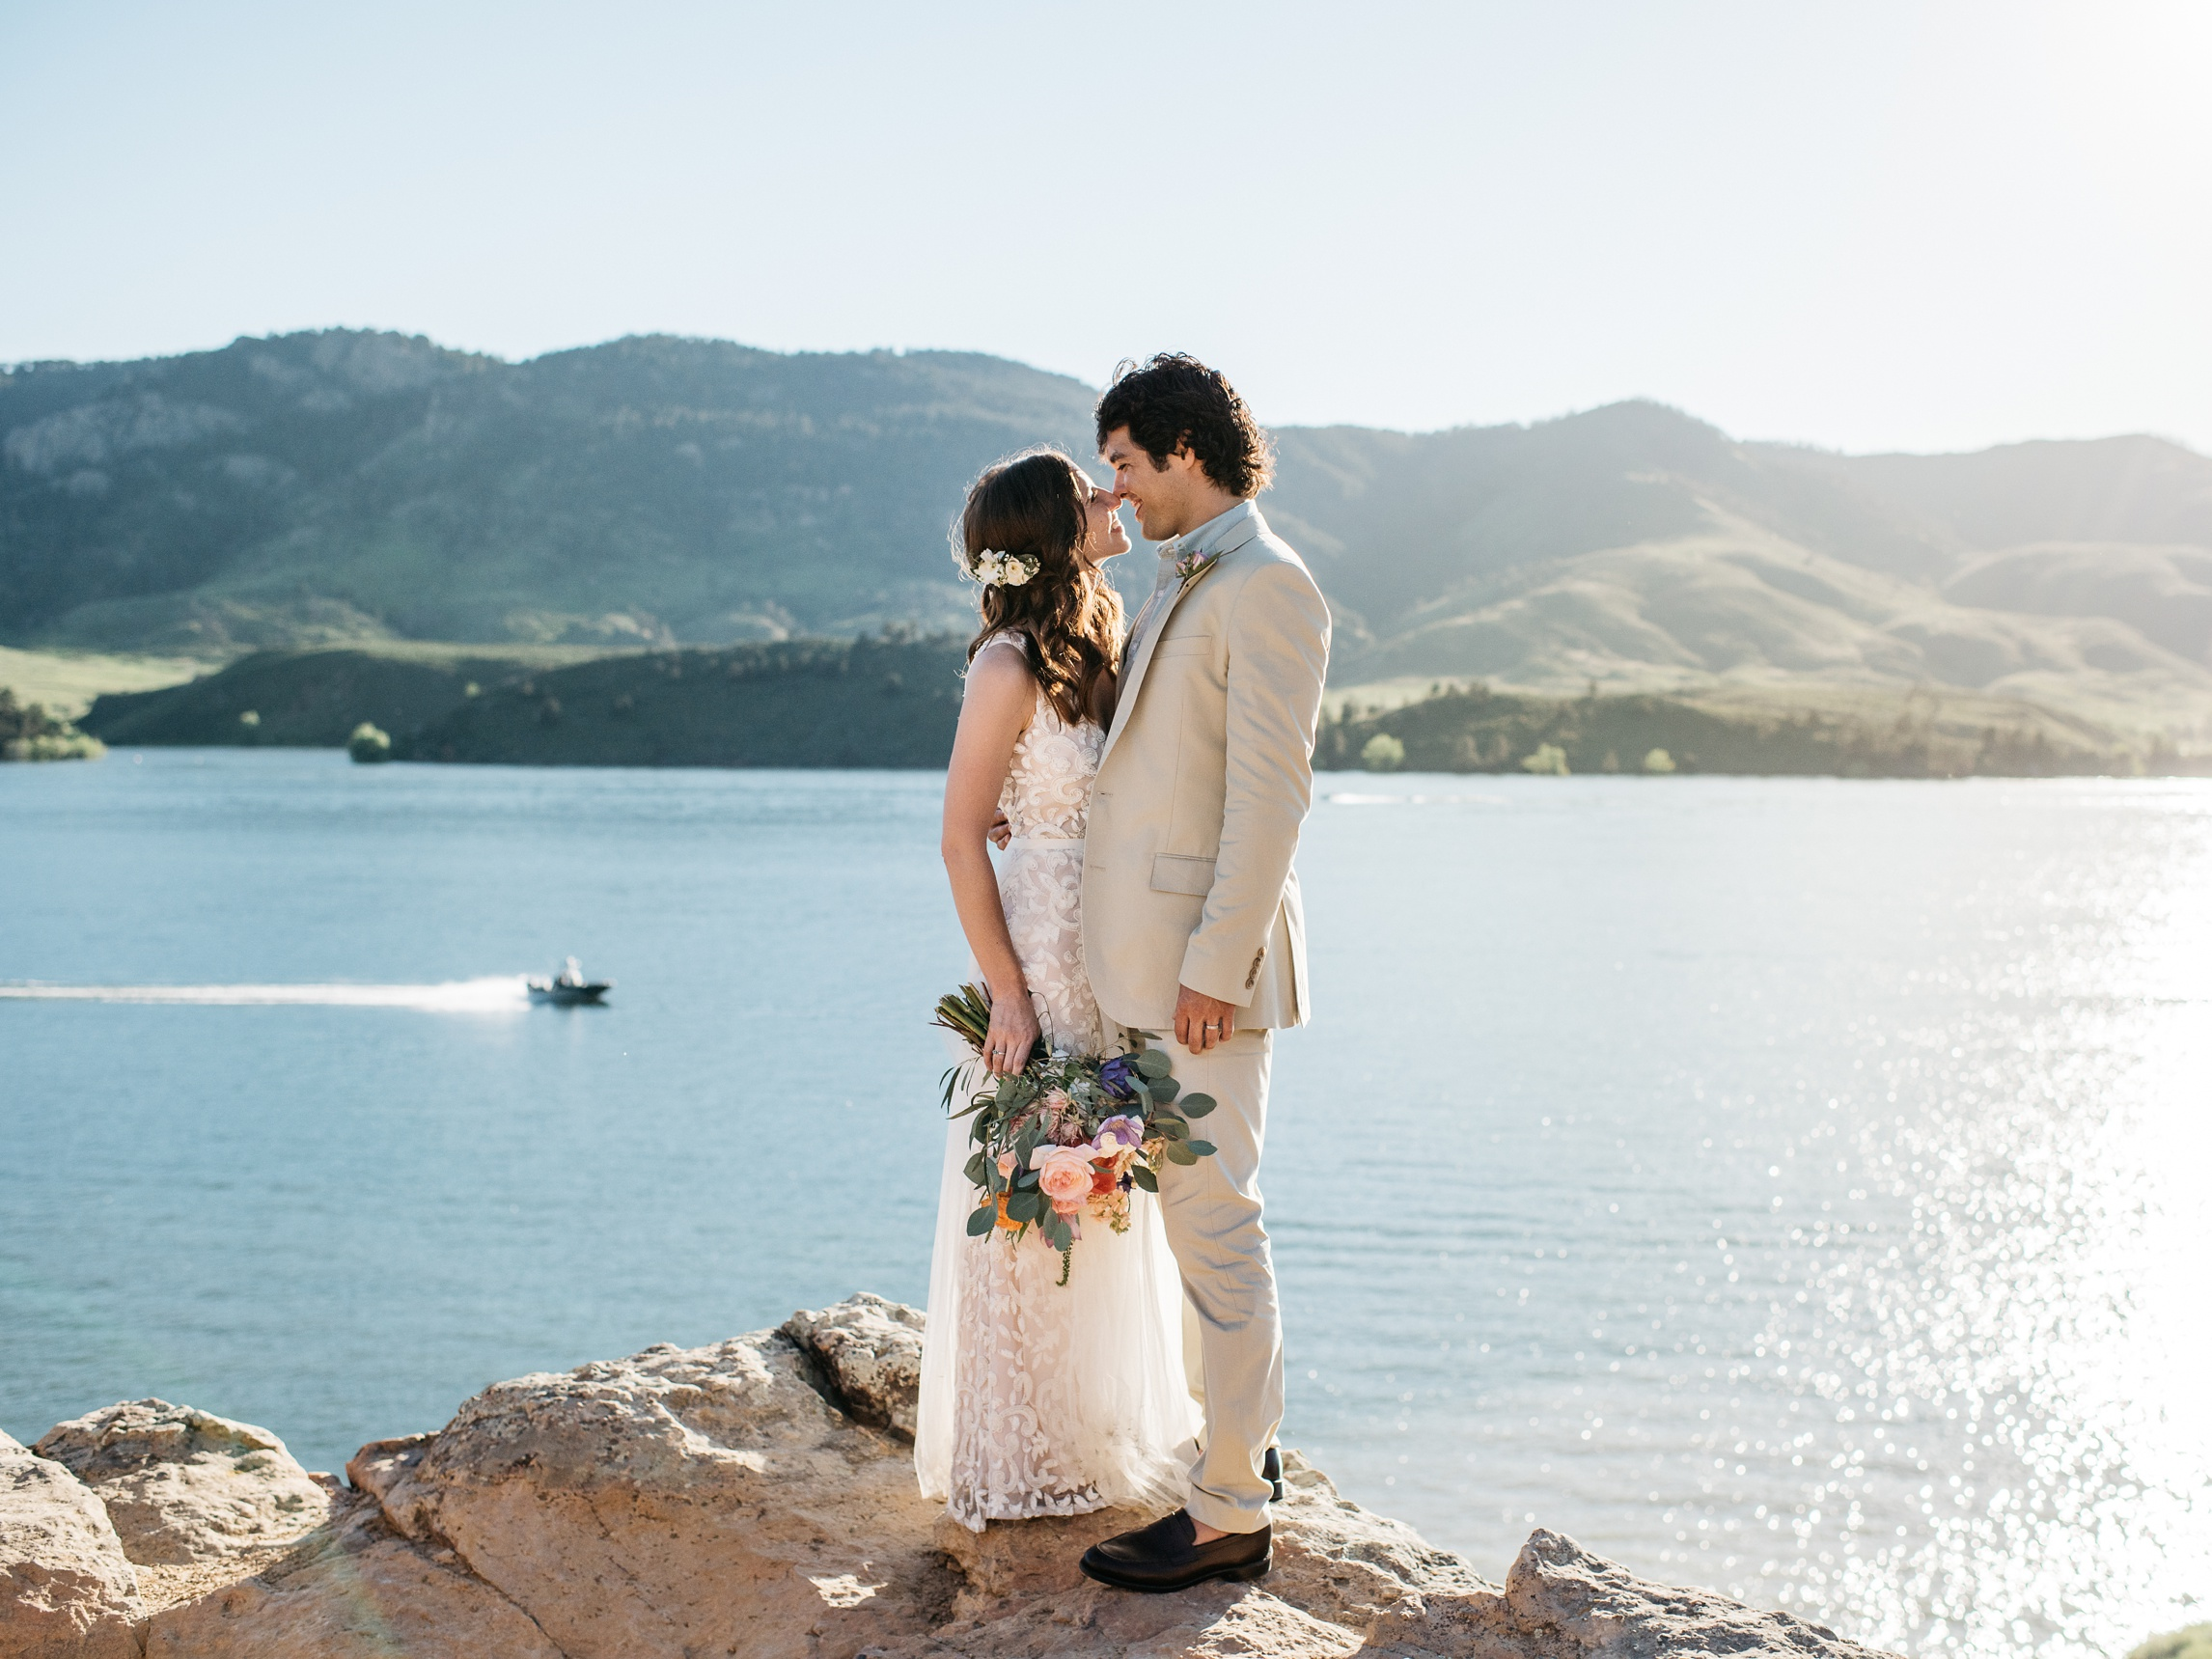 A newly married bride and groom at Horsetooth Reservoir in Fort Collins, Colorado. Wedding photography by Sonja Salzburg of Sonja K Photography.